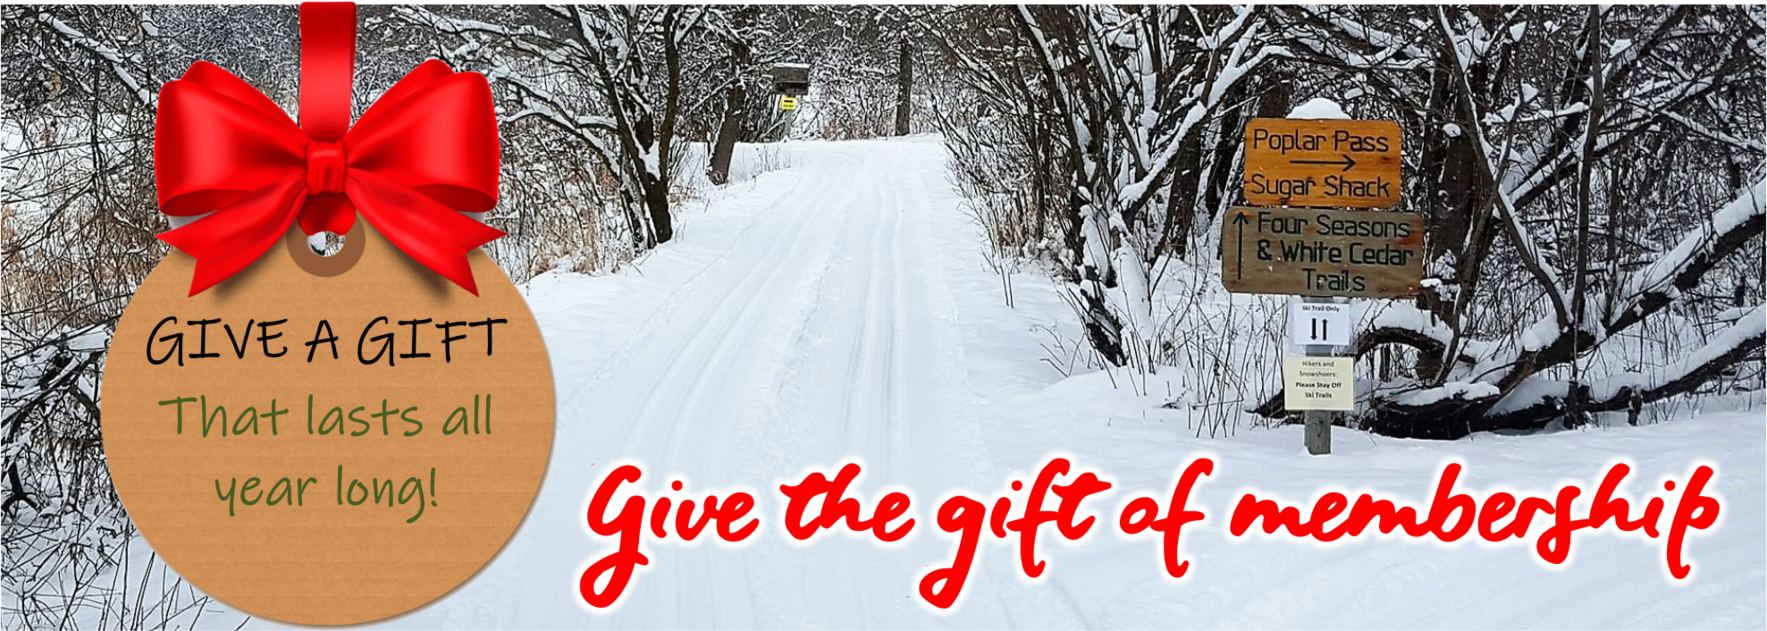 Give the Gift of Nature this Holiday Season image